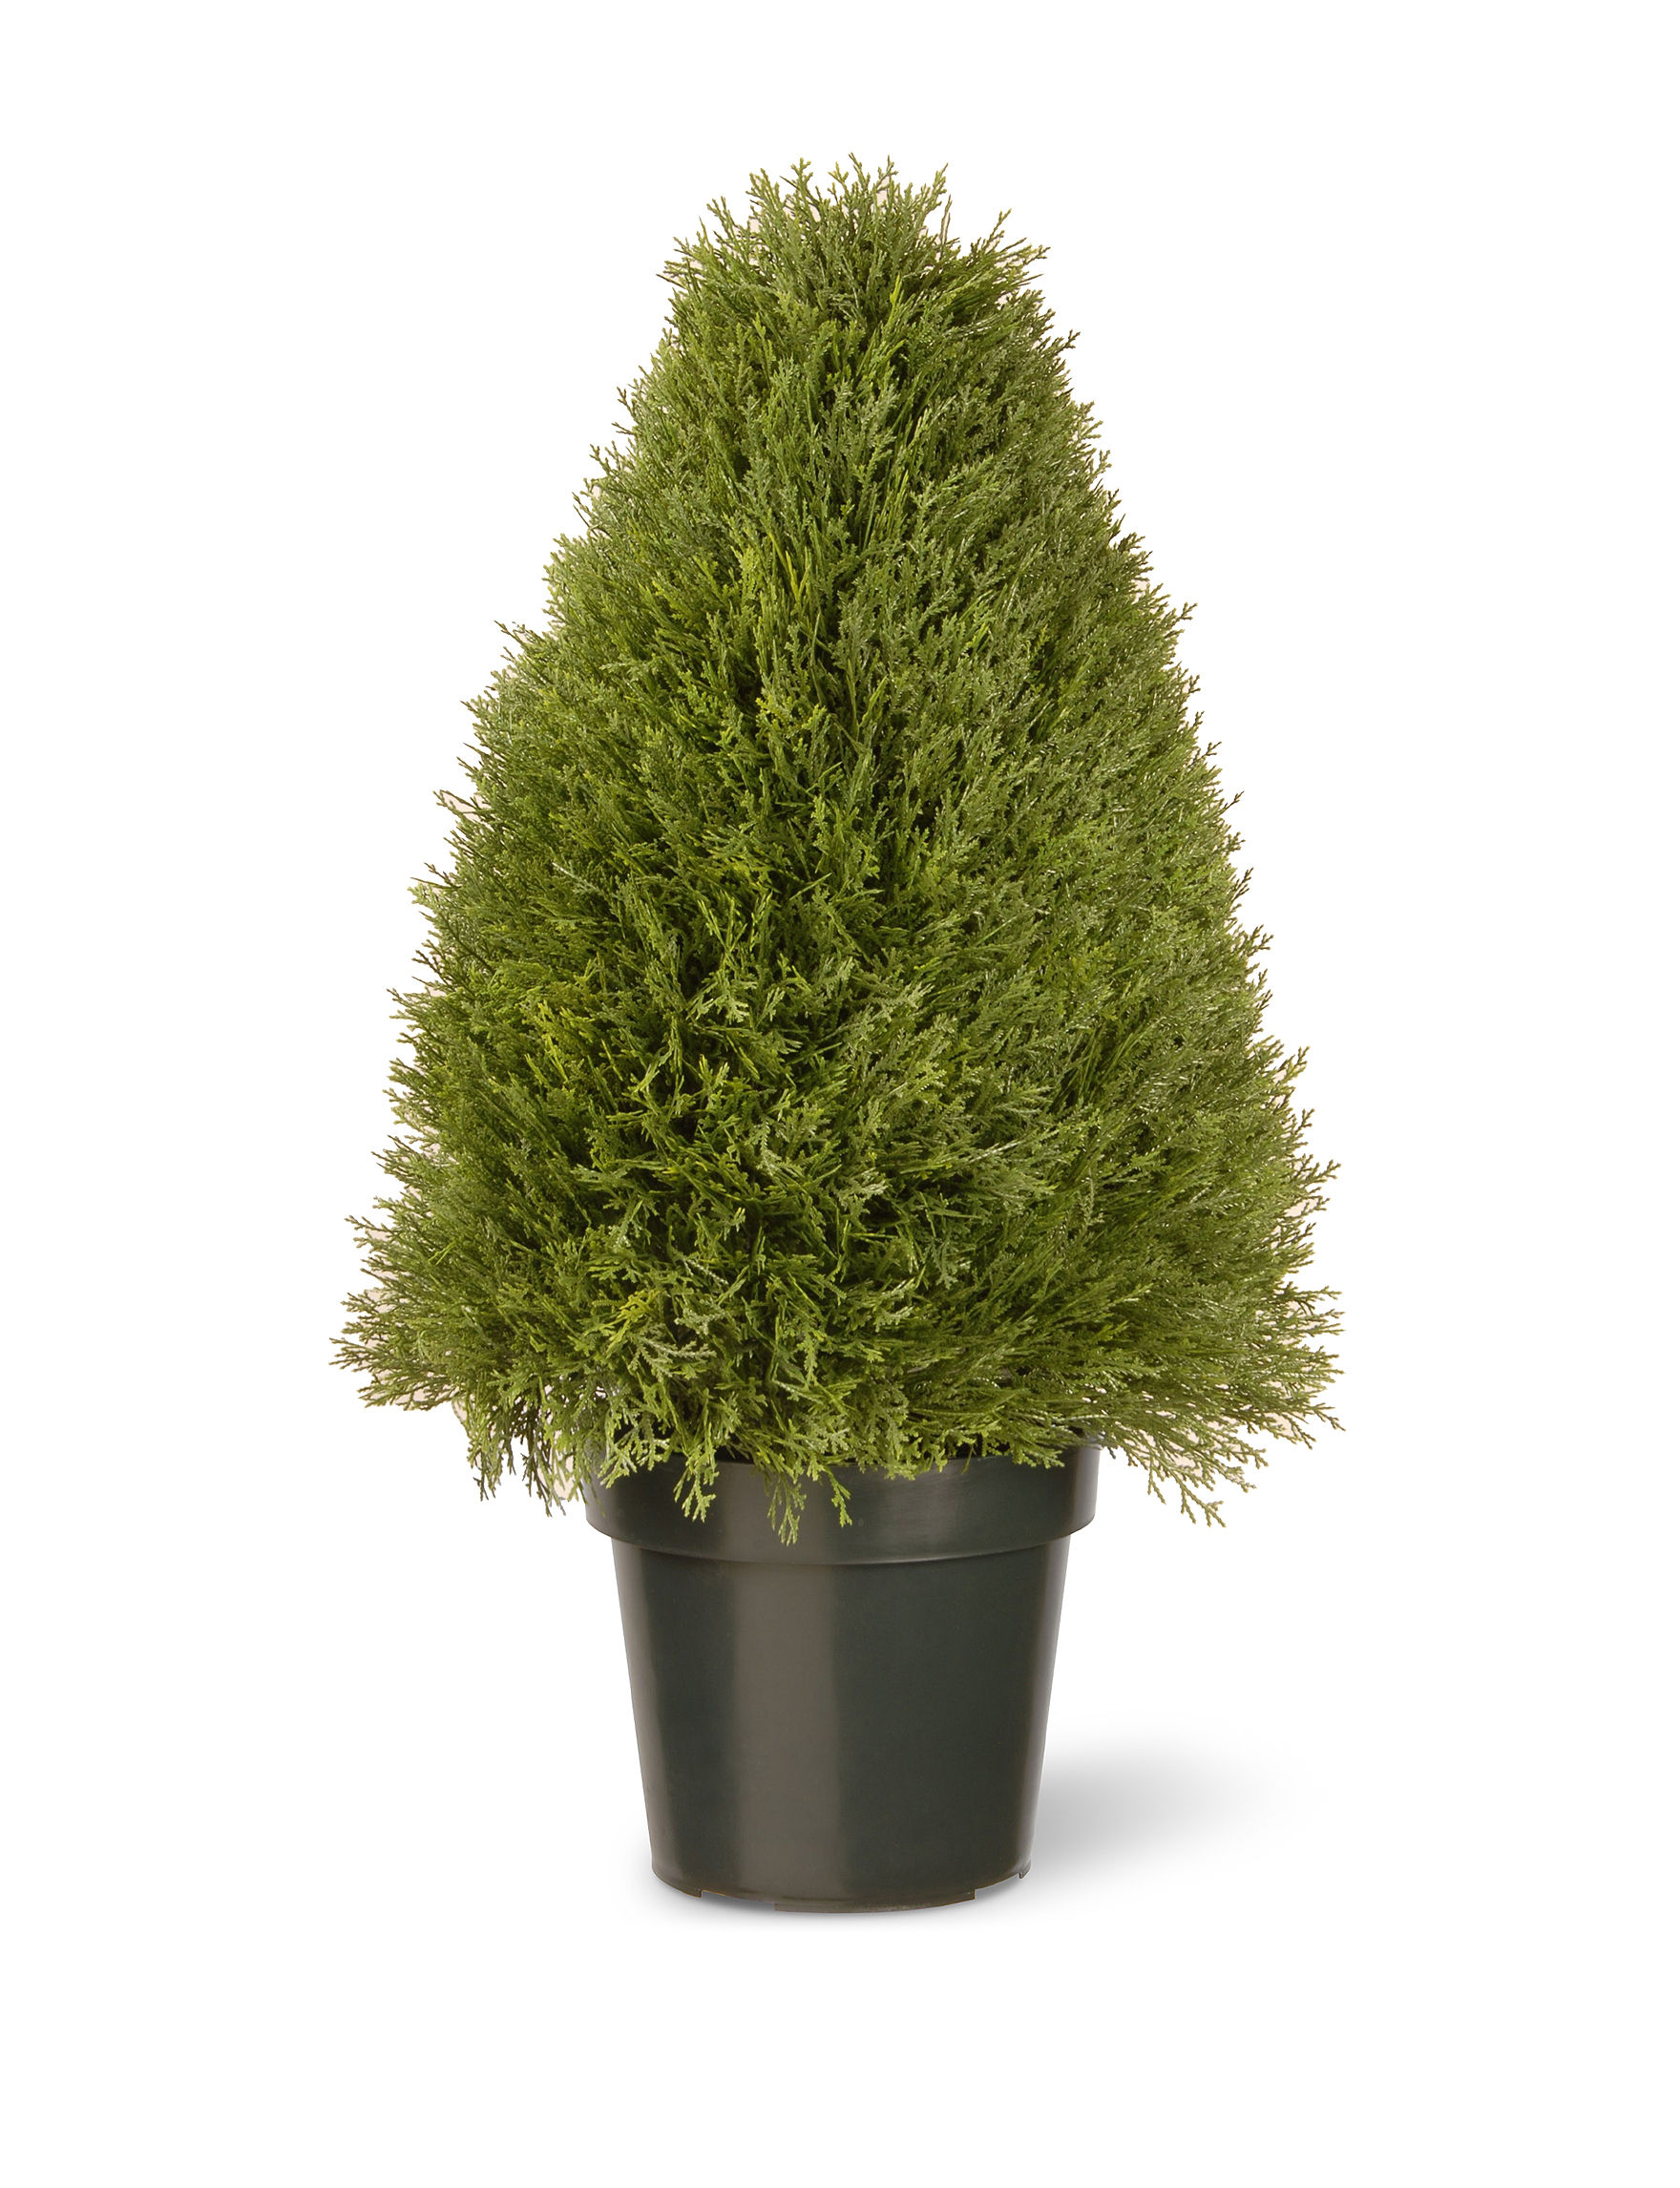 National Tree Company Green Faux Plants Outdoor Decor